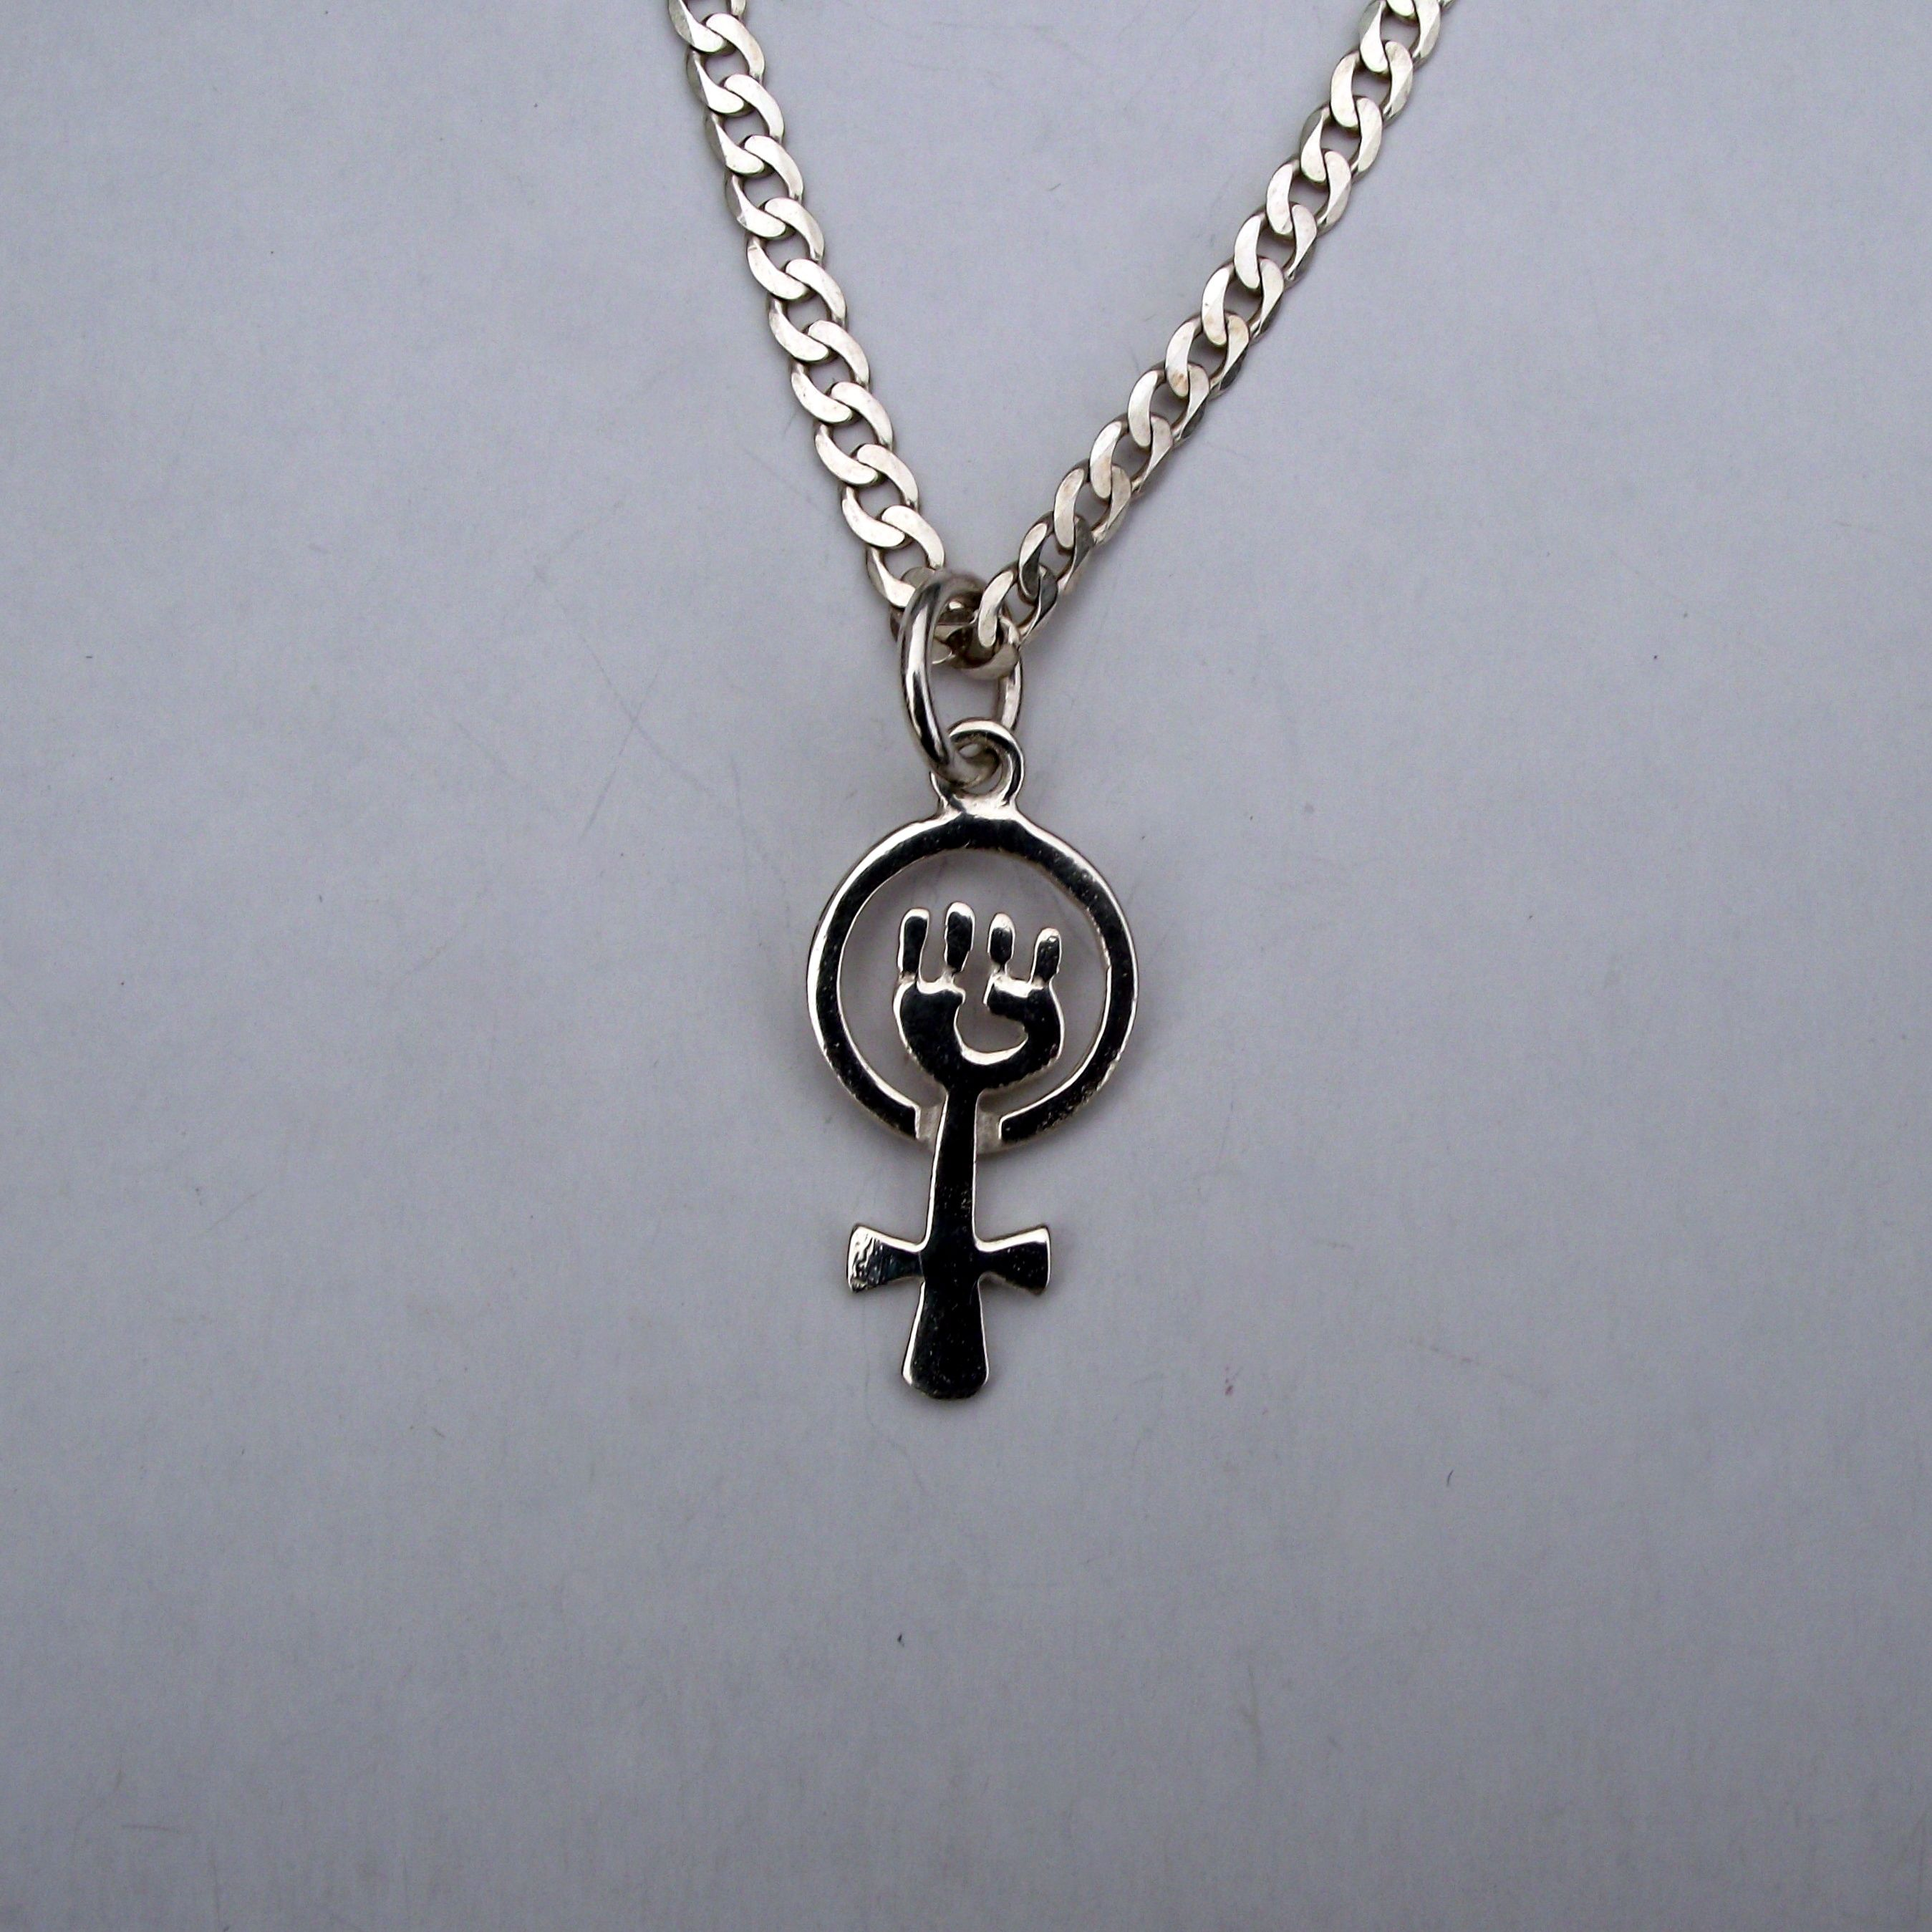 Woman clenched fist symbol jewelry